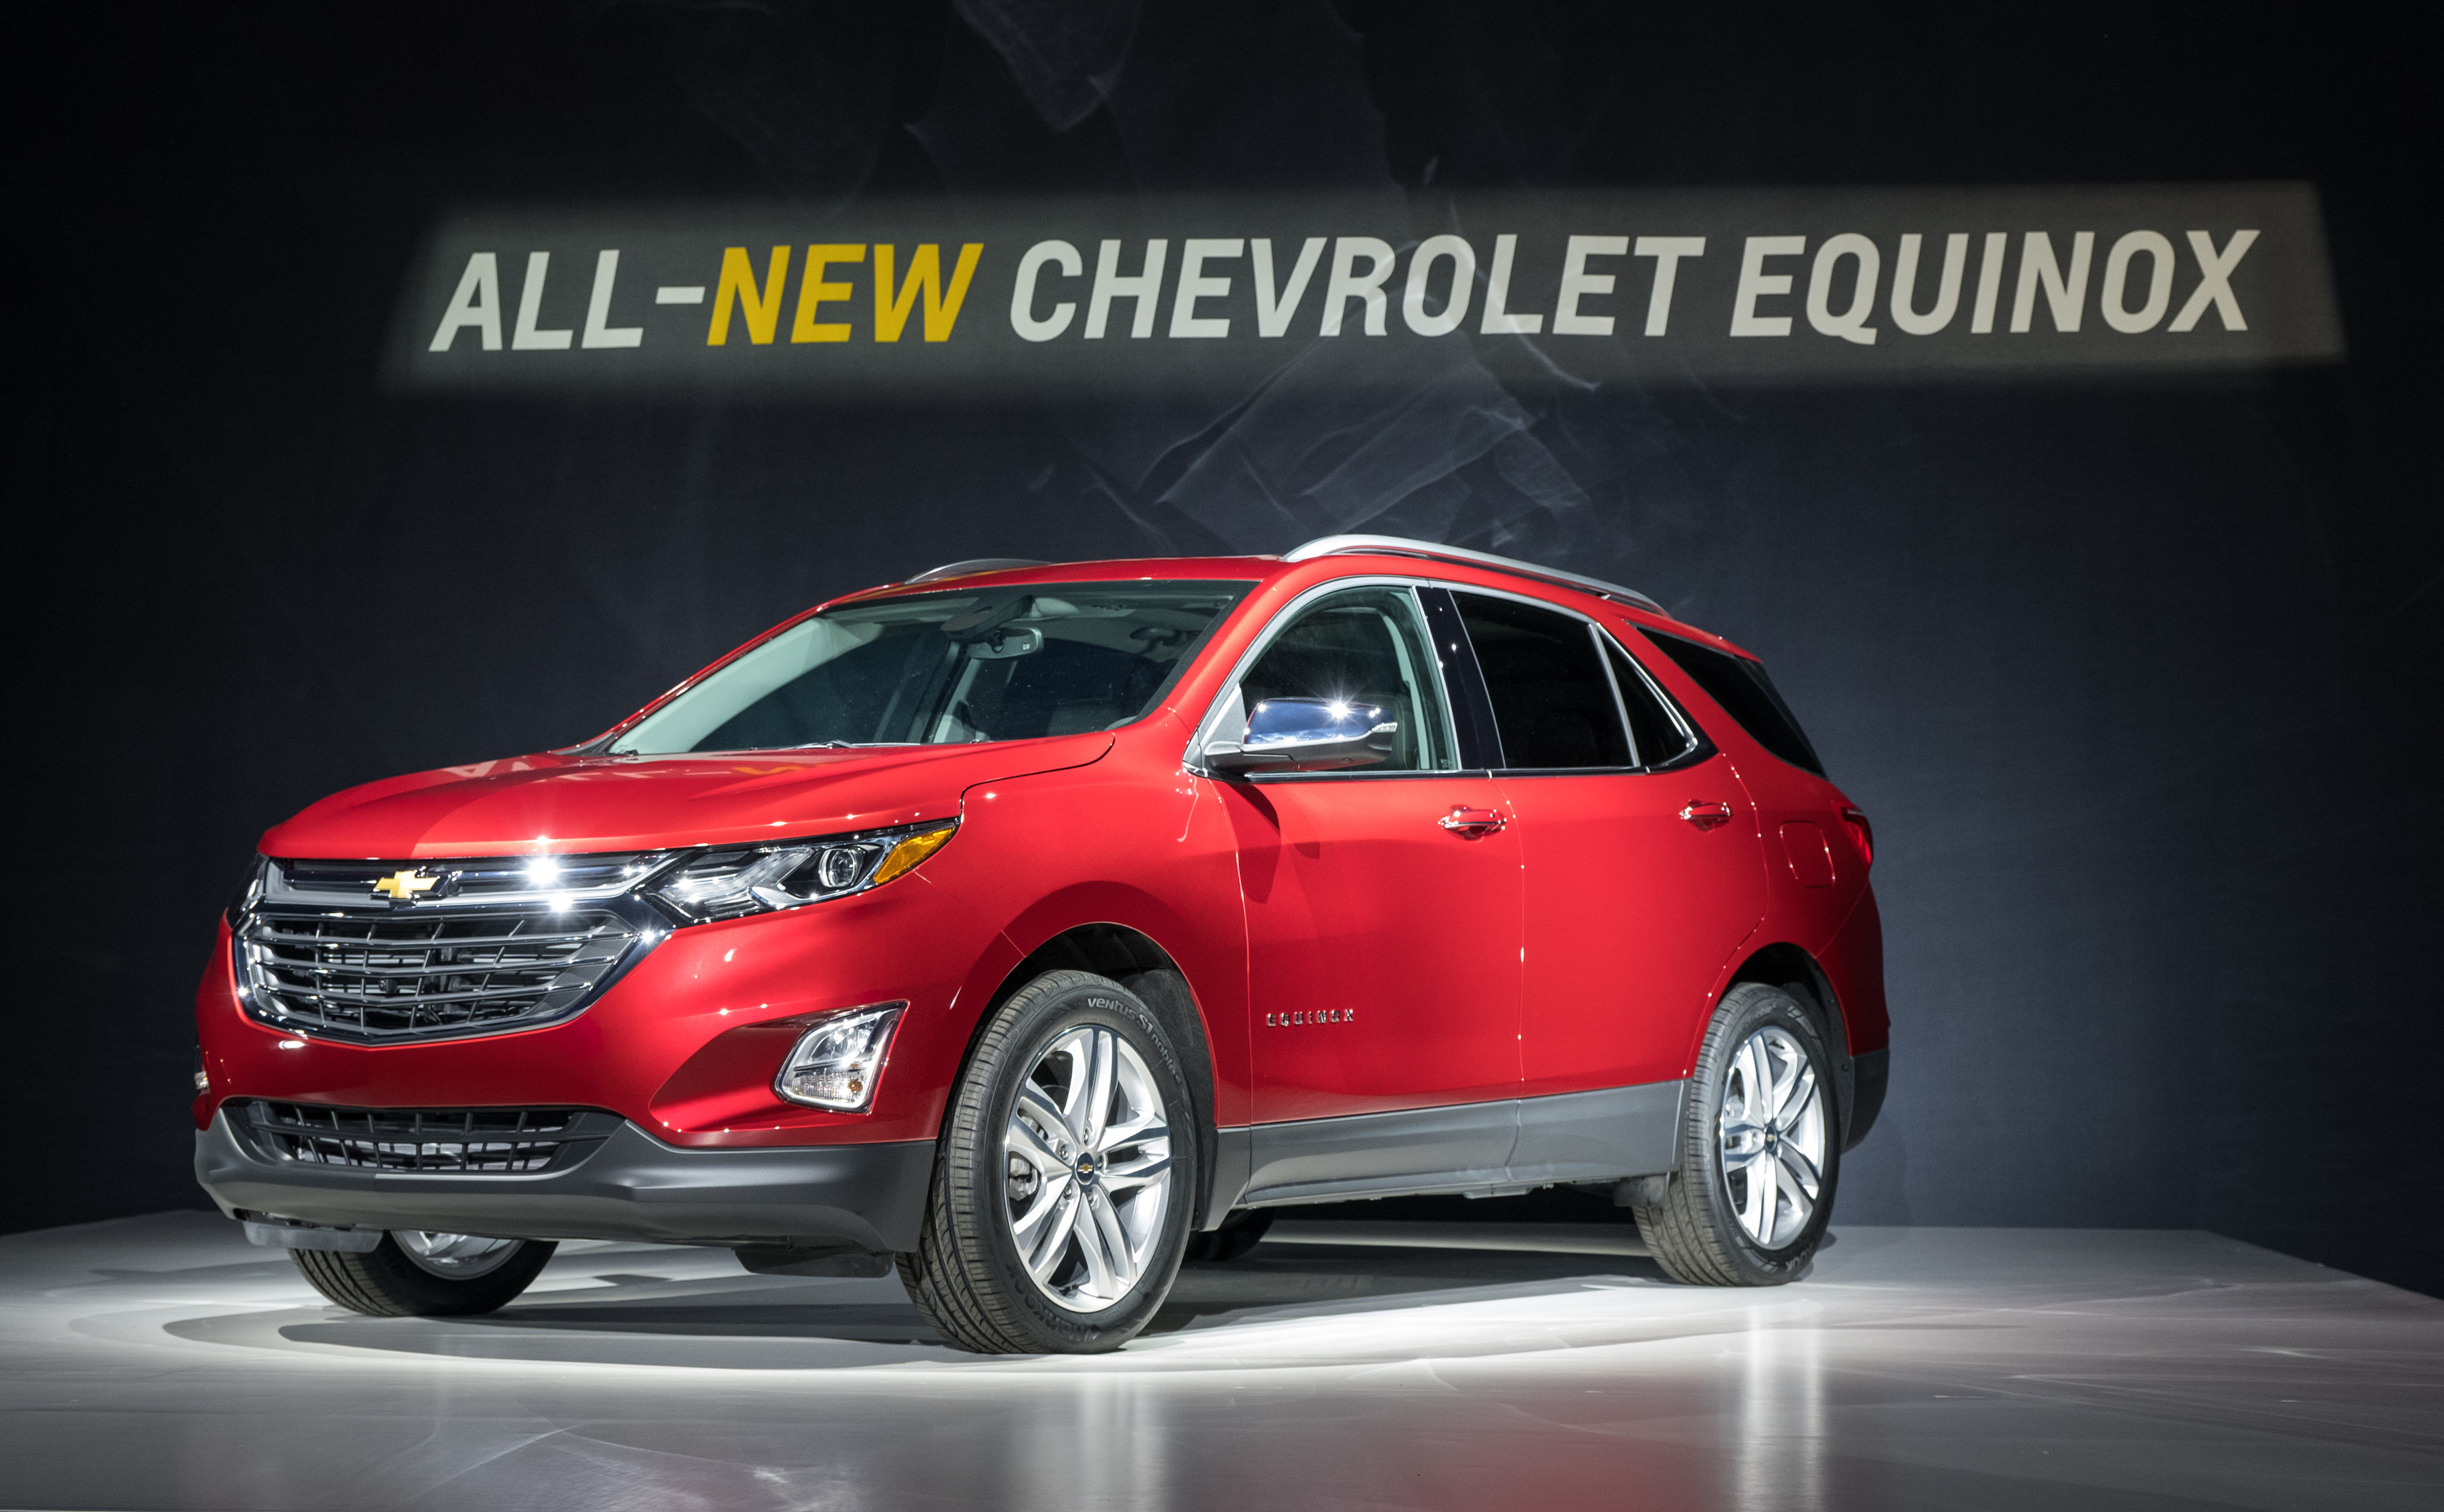 meet the 40 mpg 2018 chevrolet equinox crossover. Black Bedroom Furniture Sets. Home Design Ideas